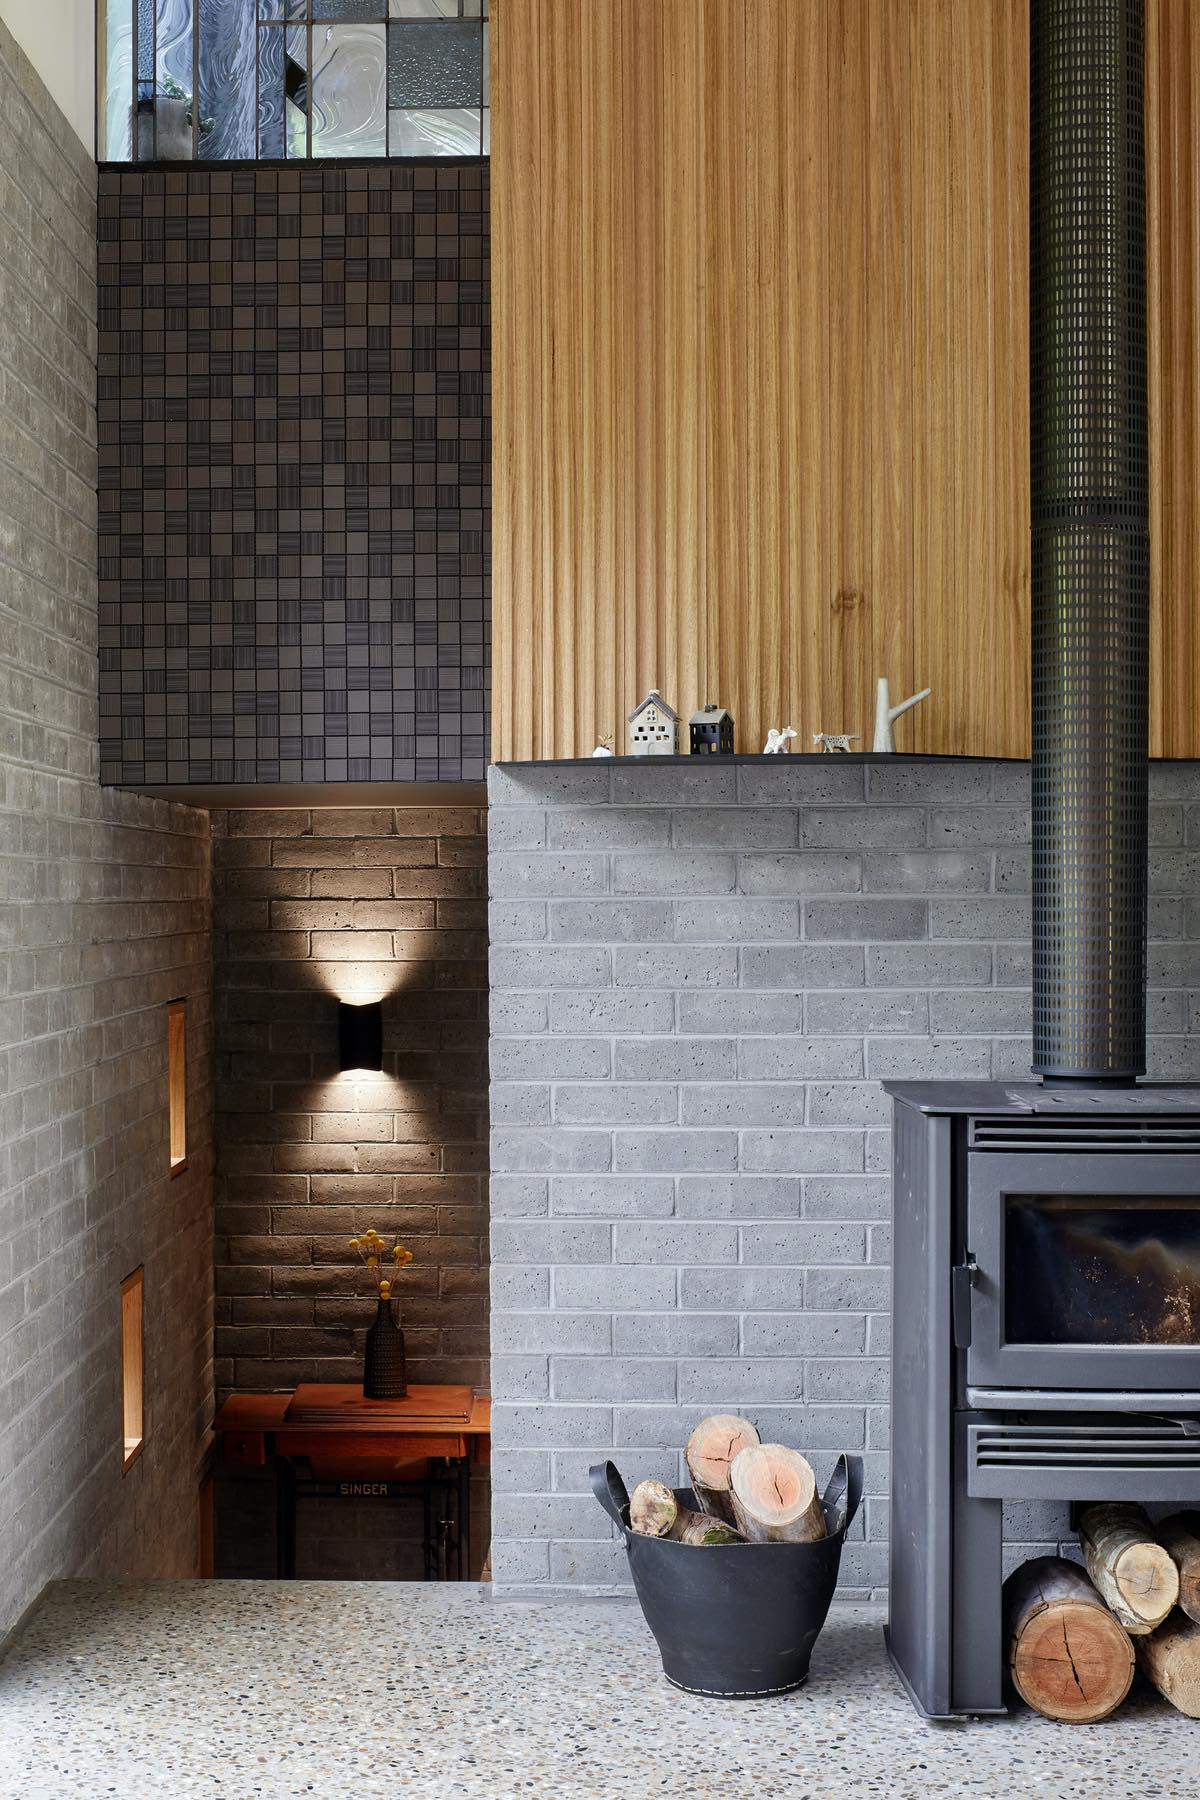 black metallic chimney with wall background made of concrete blocks